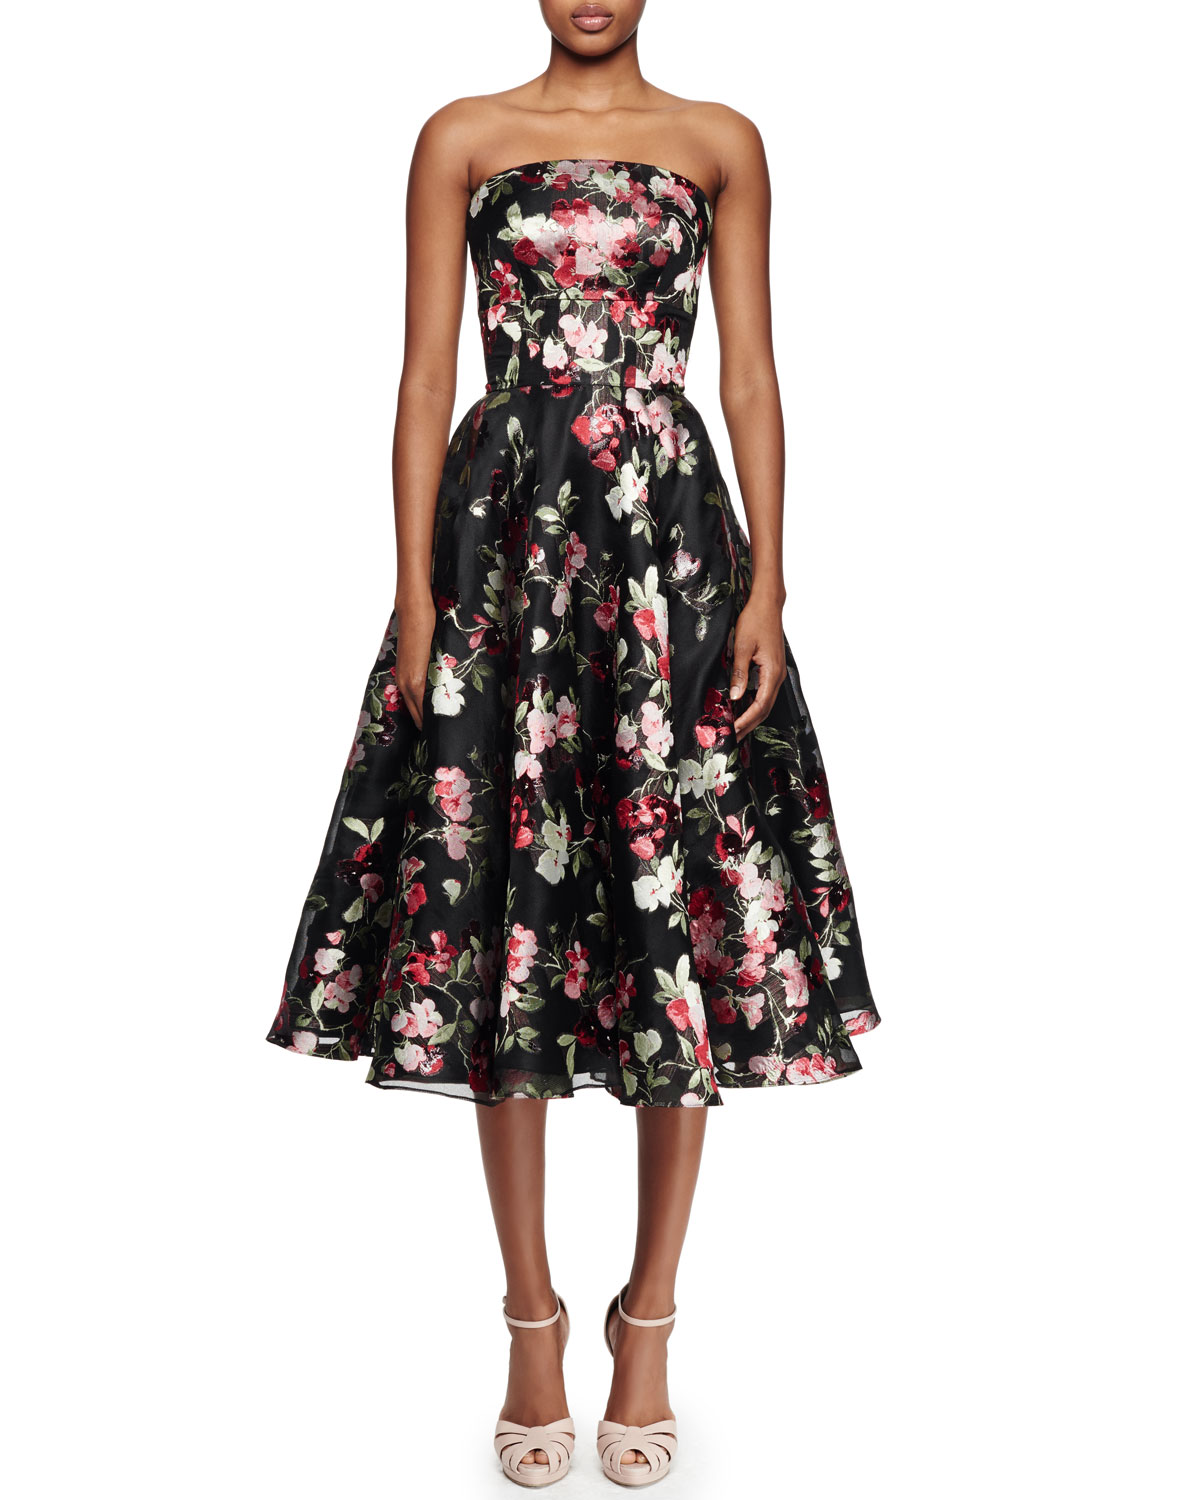 Strapless Full-Skirt Cocktail Dress, Black Multi